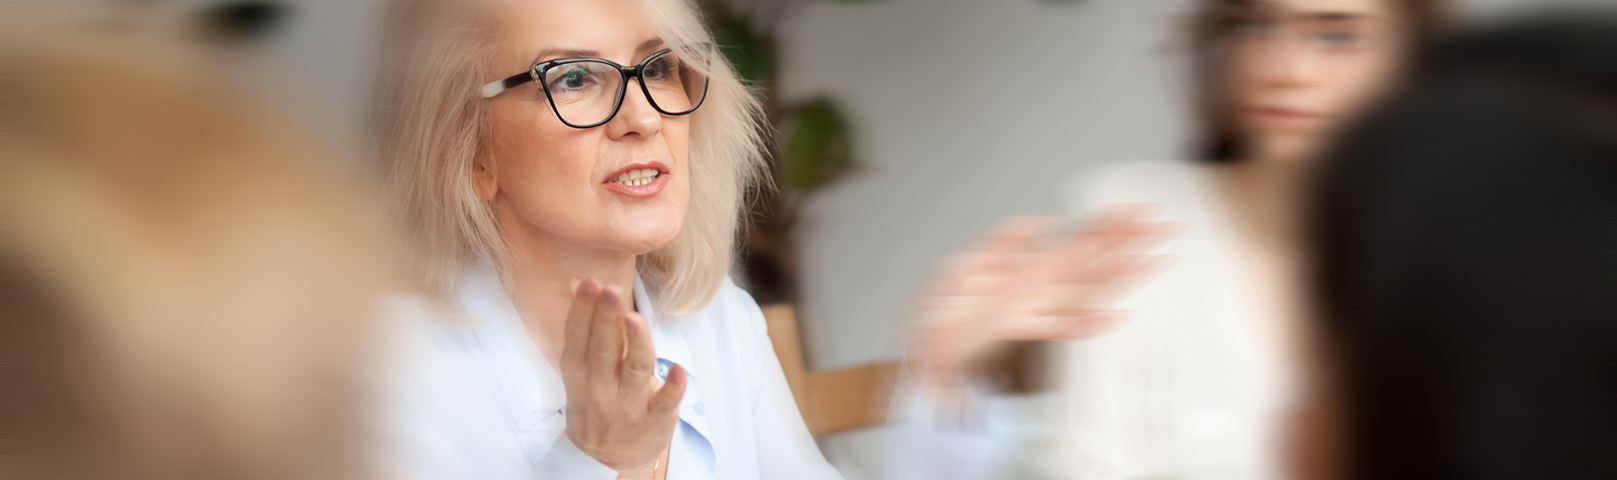 a mature woman speaks before a group in a room where everything around her appears blurry due to her tinnitus